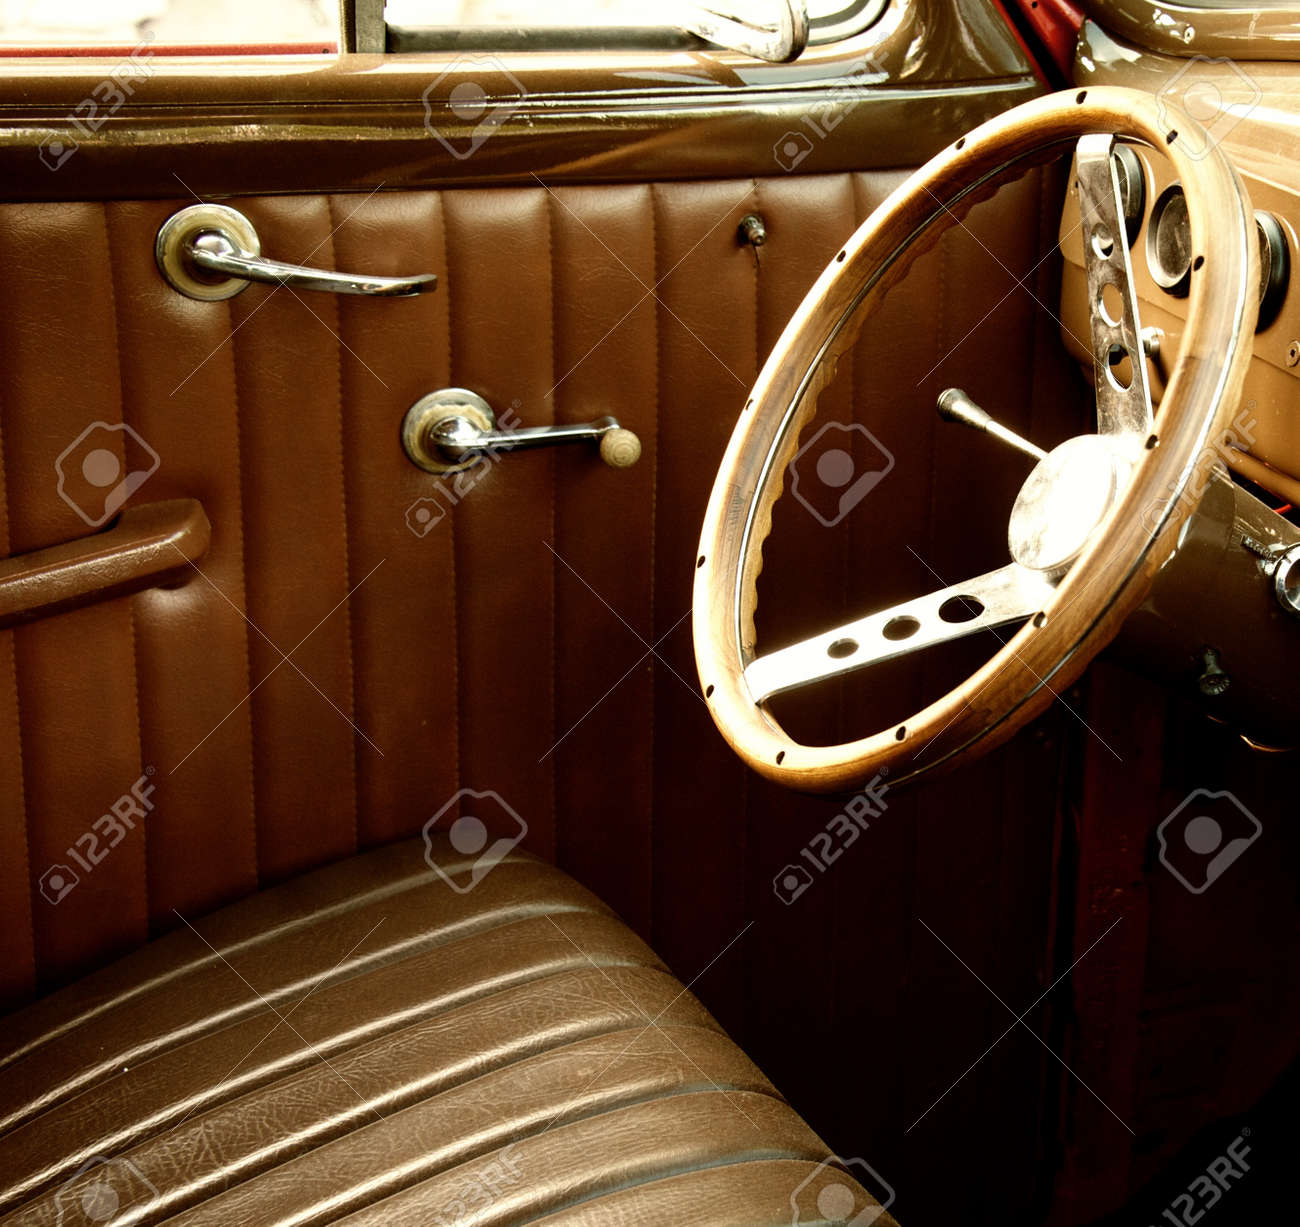 Vintage Car Interior Stock Photo Picture And Royalty Free Image